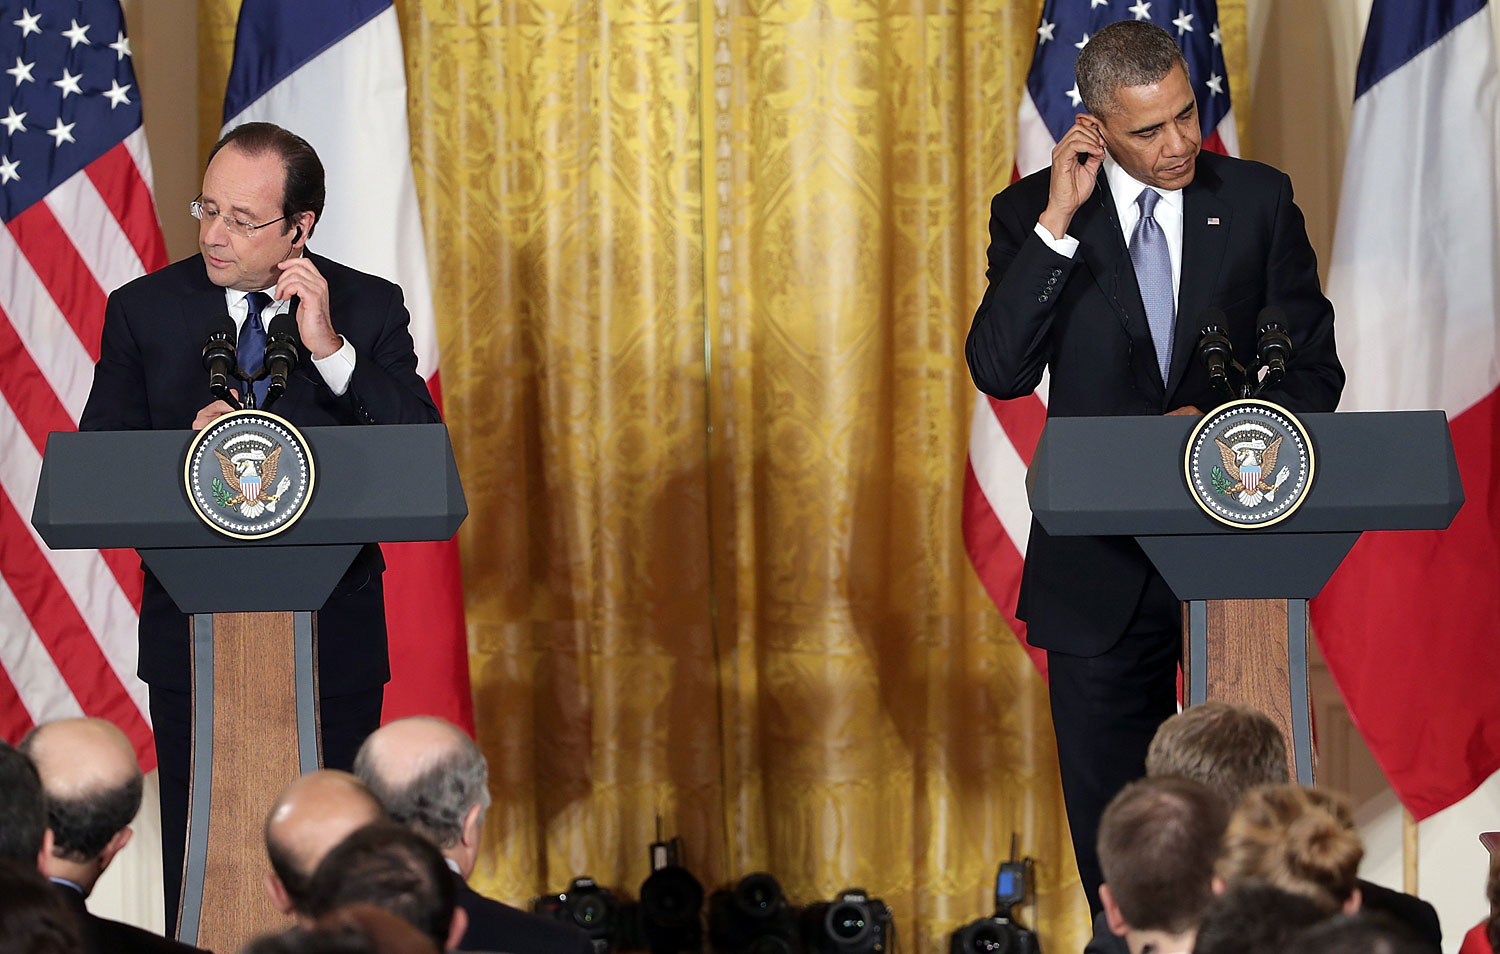 President Barack Obama and French President Francois Hollande arrive for a joint press conference in the East Room at the White House on Feb. 11, 2014 in Washington.